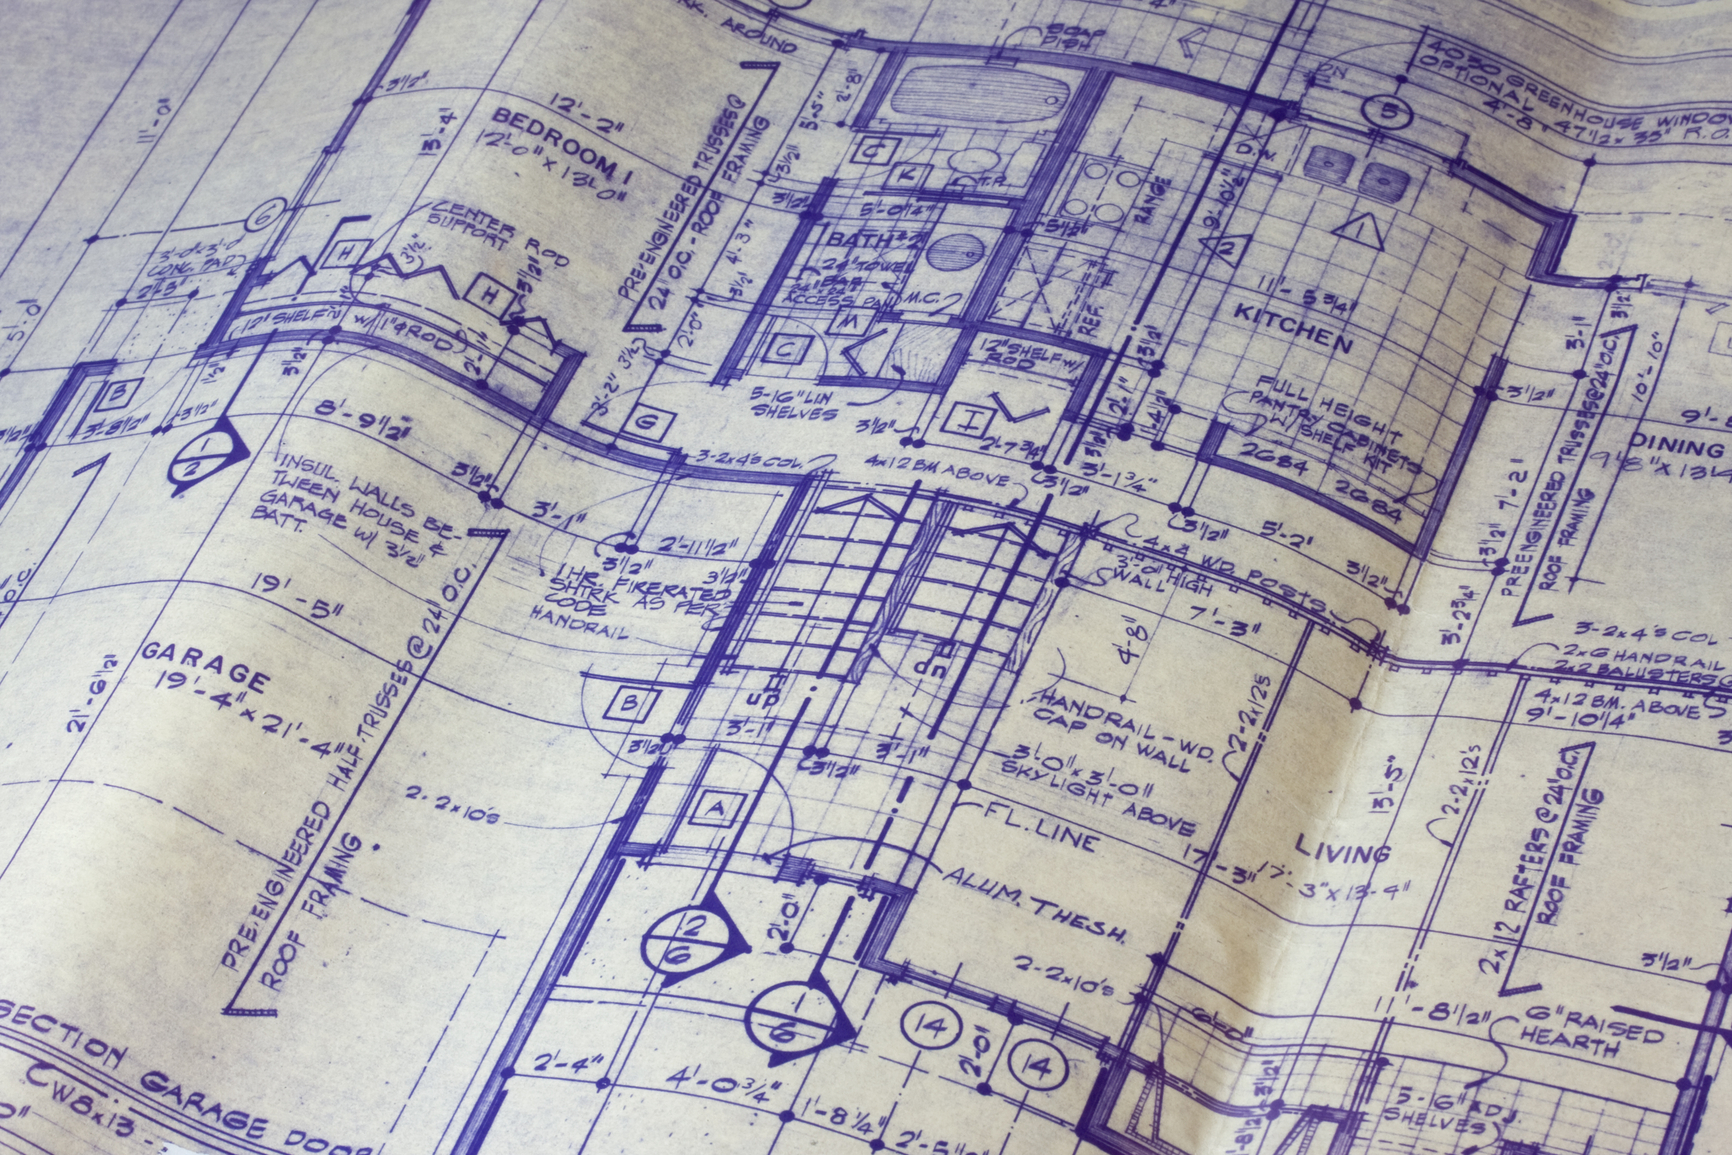 Detail of 40 years old house blueprint